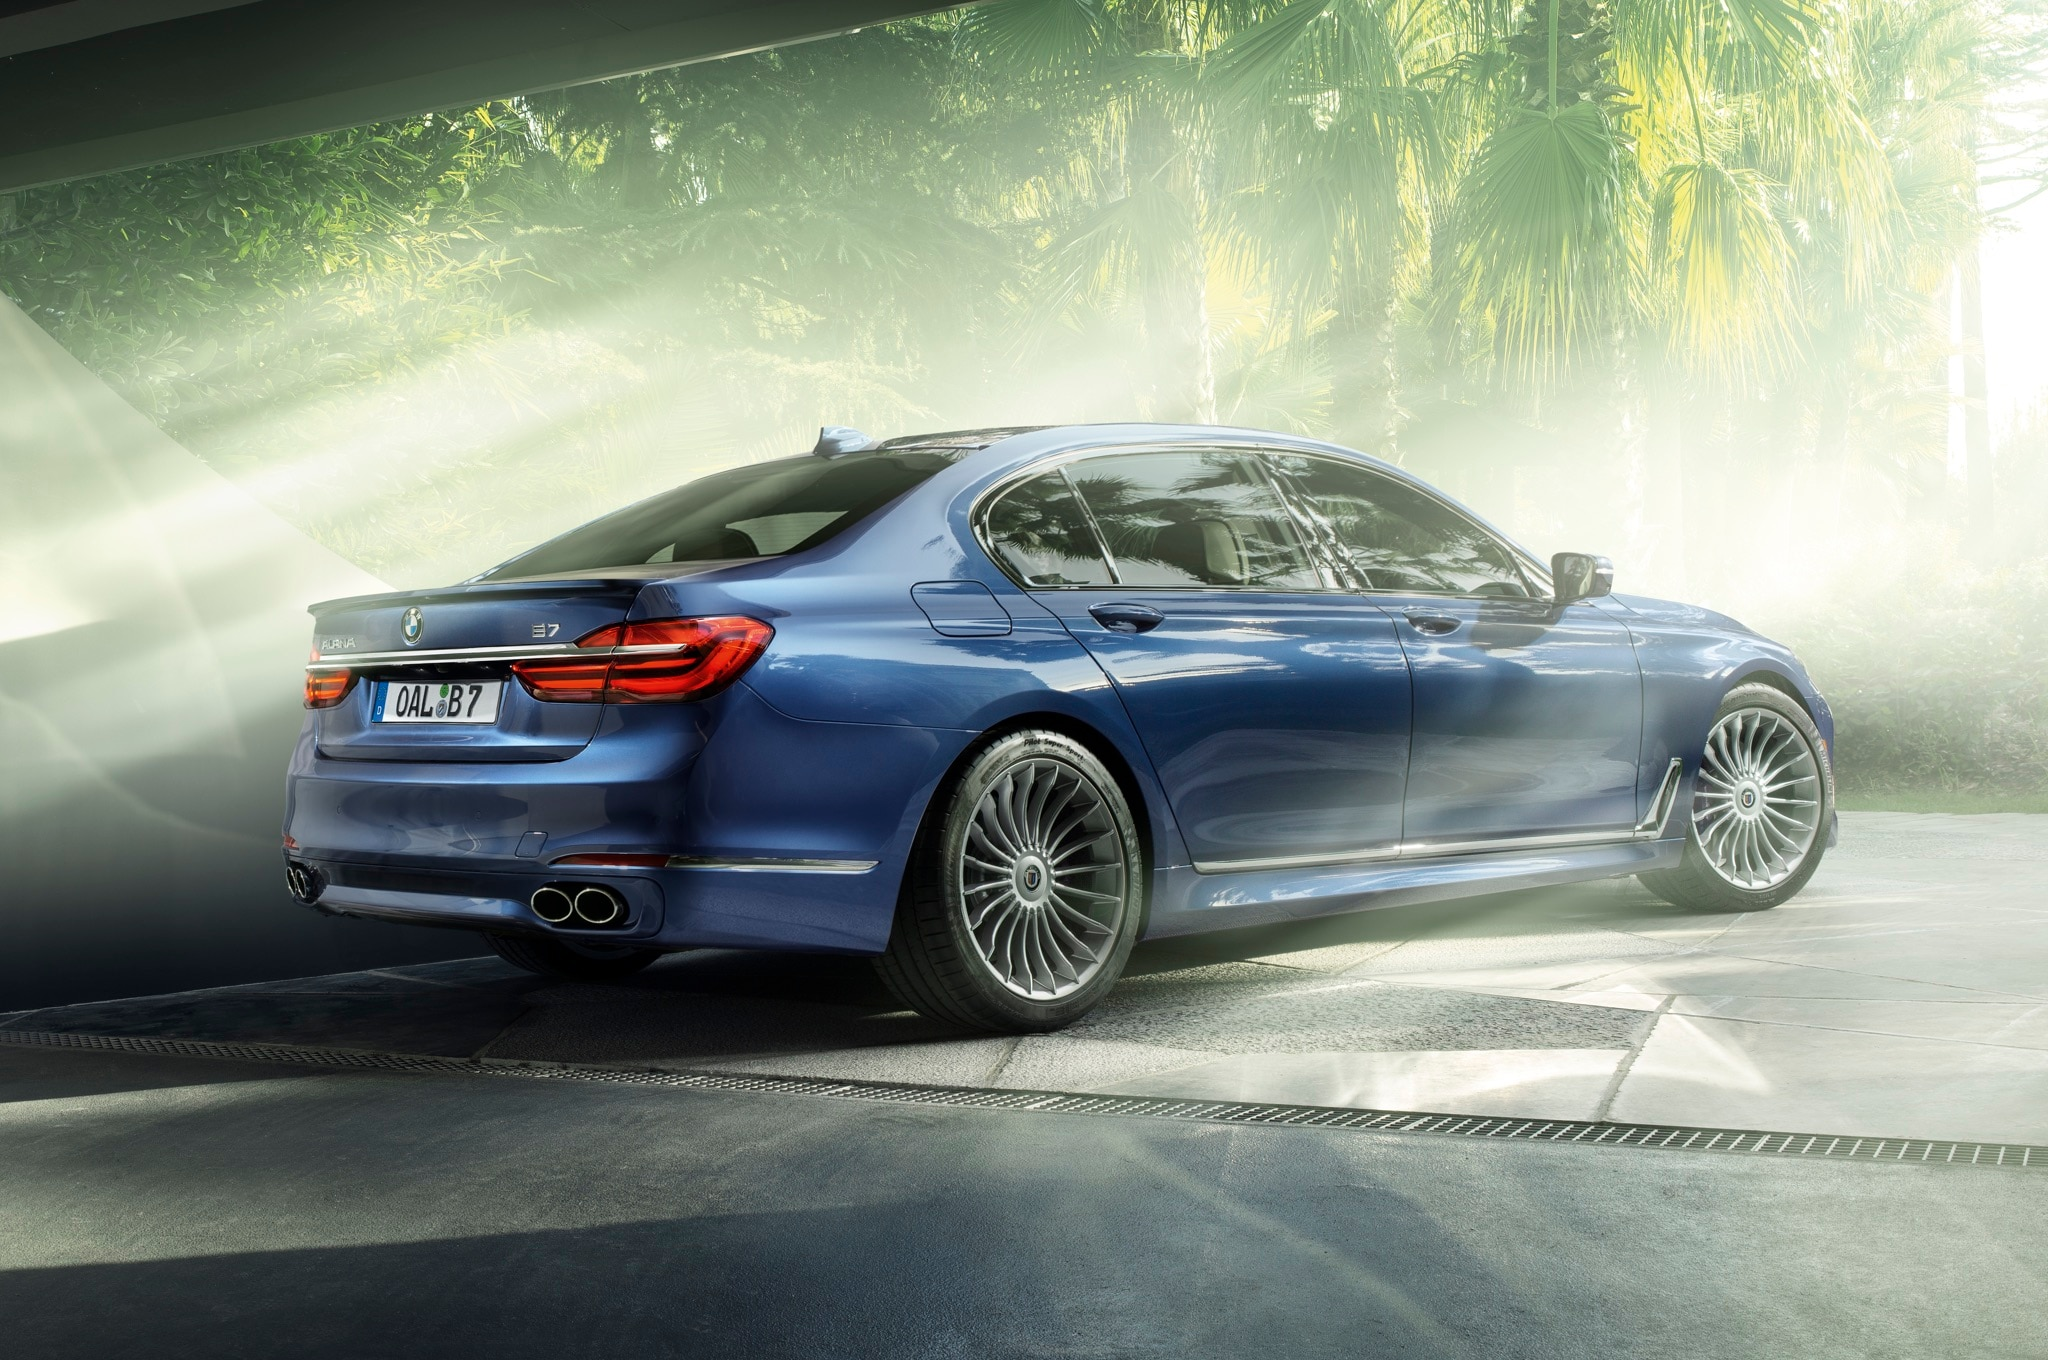 2017 Bmw Alpina B7 Xdrive Is A 600 Hp 193 Mph Luxury Sedan